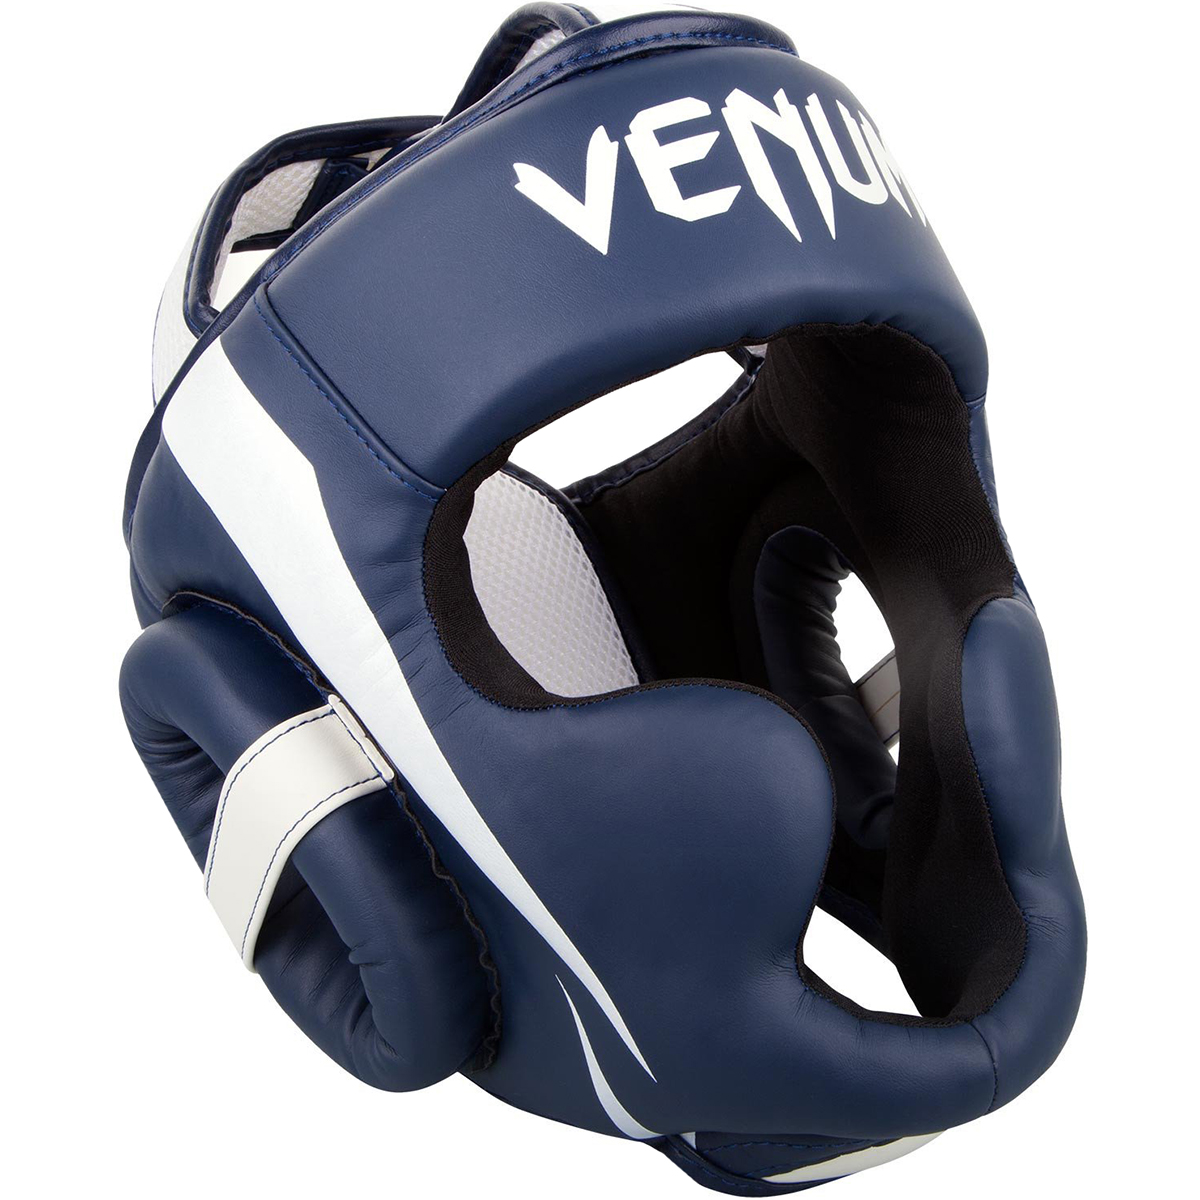 Venum-Elite-Boxing-Headgear thumbnail 57